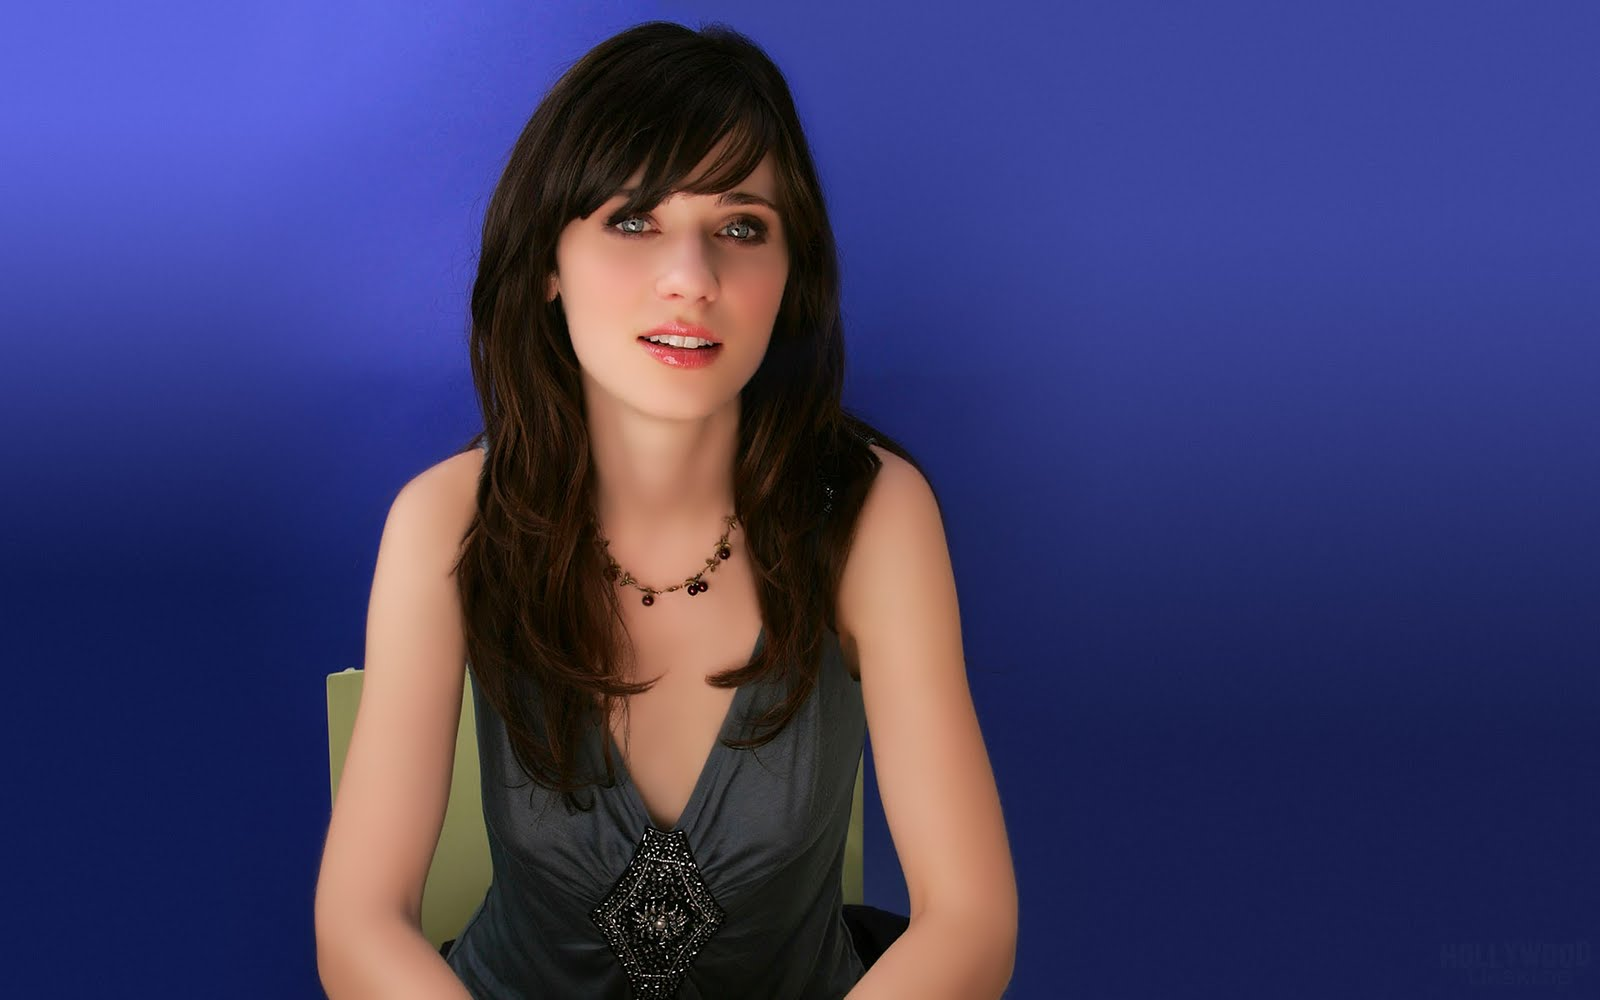 zooey deschanel hot 1920 - photo #11